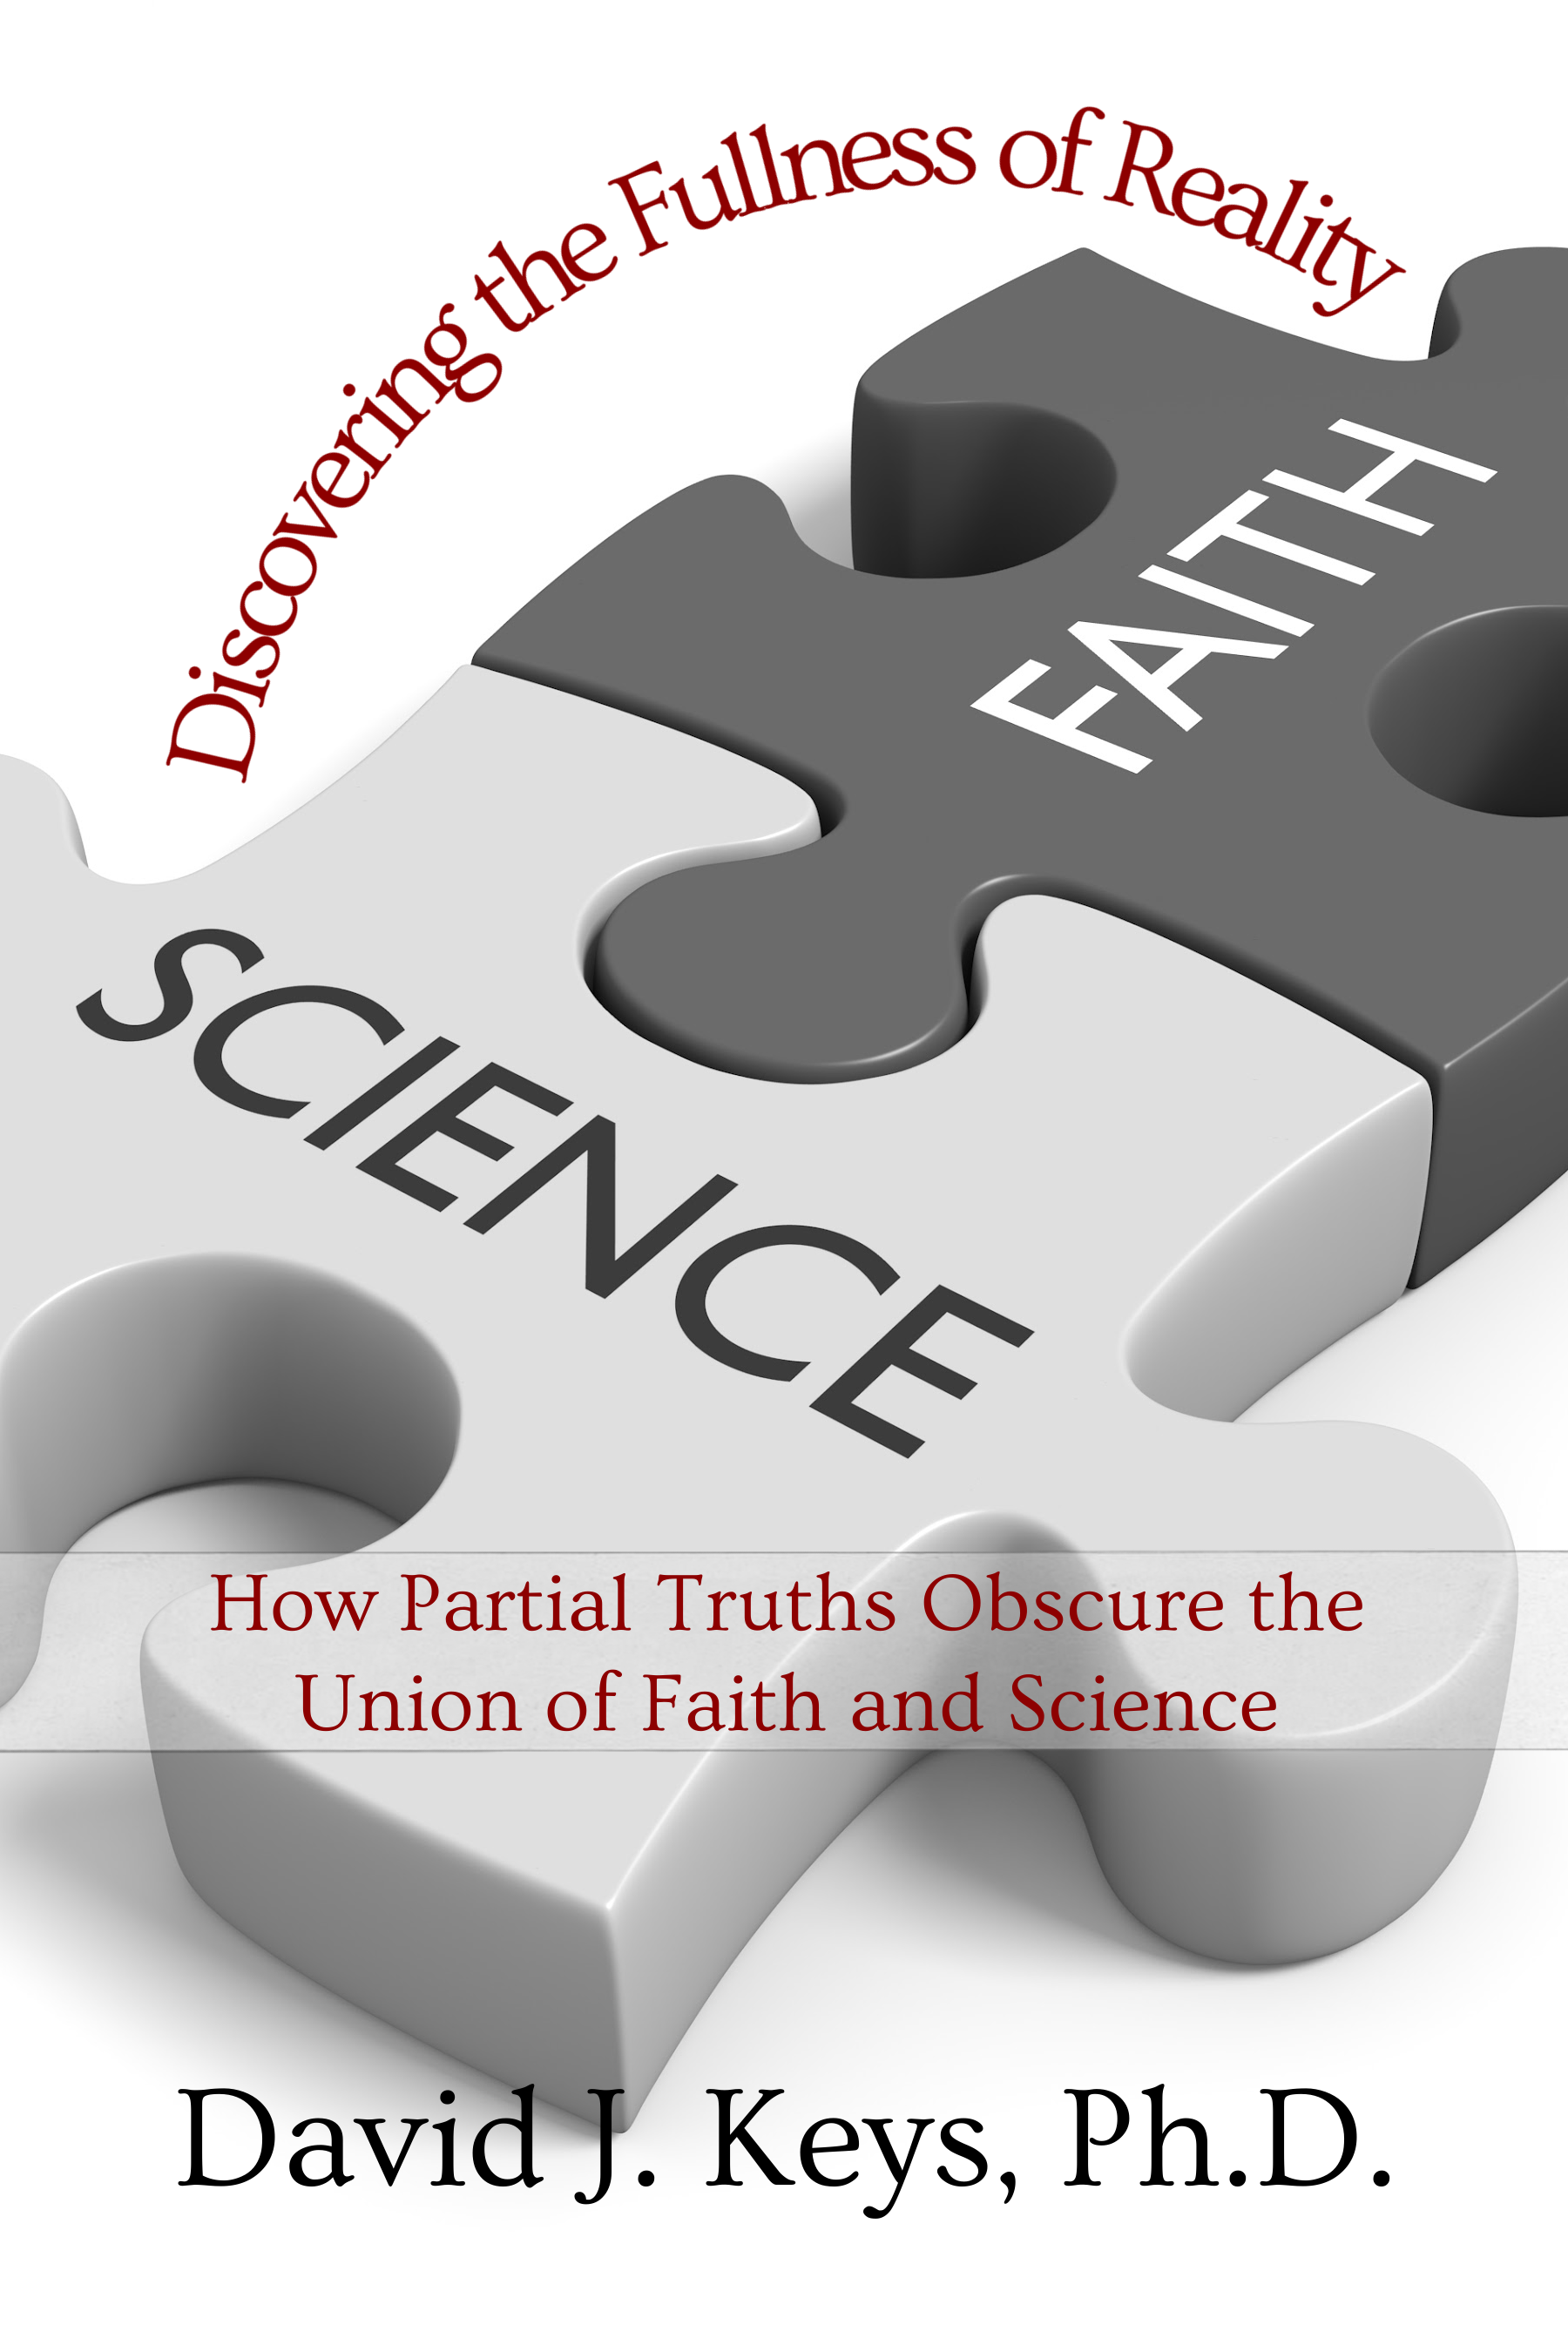 Discovering the Fullness of Reality by Dr. David J. Keys